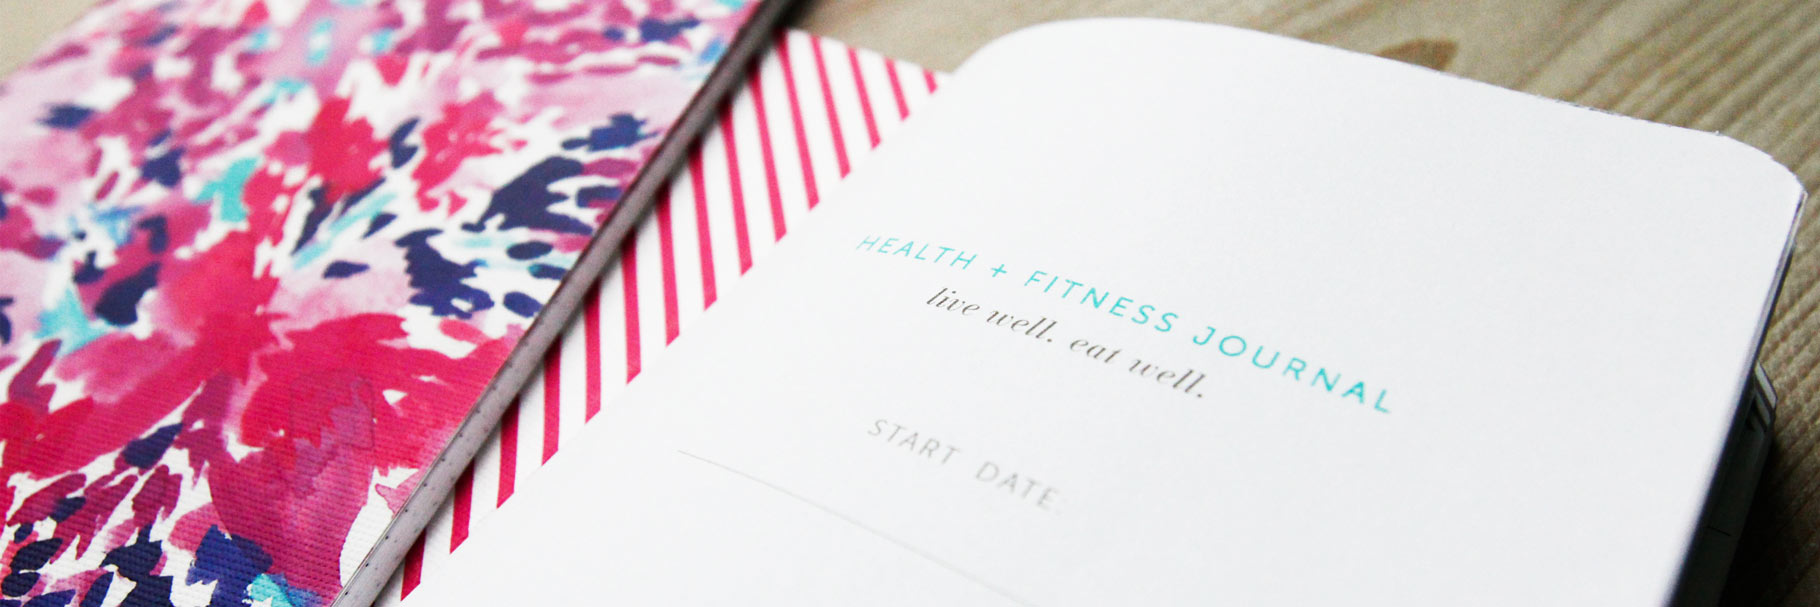 Health and fitness exercise journal.